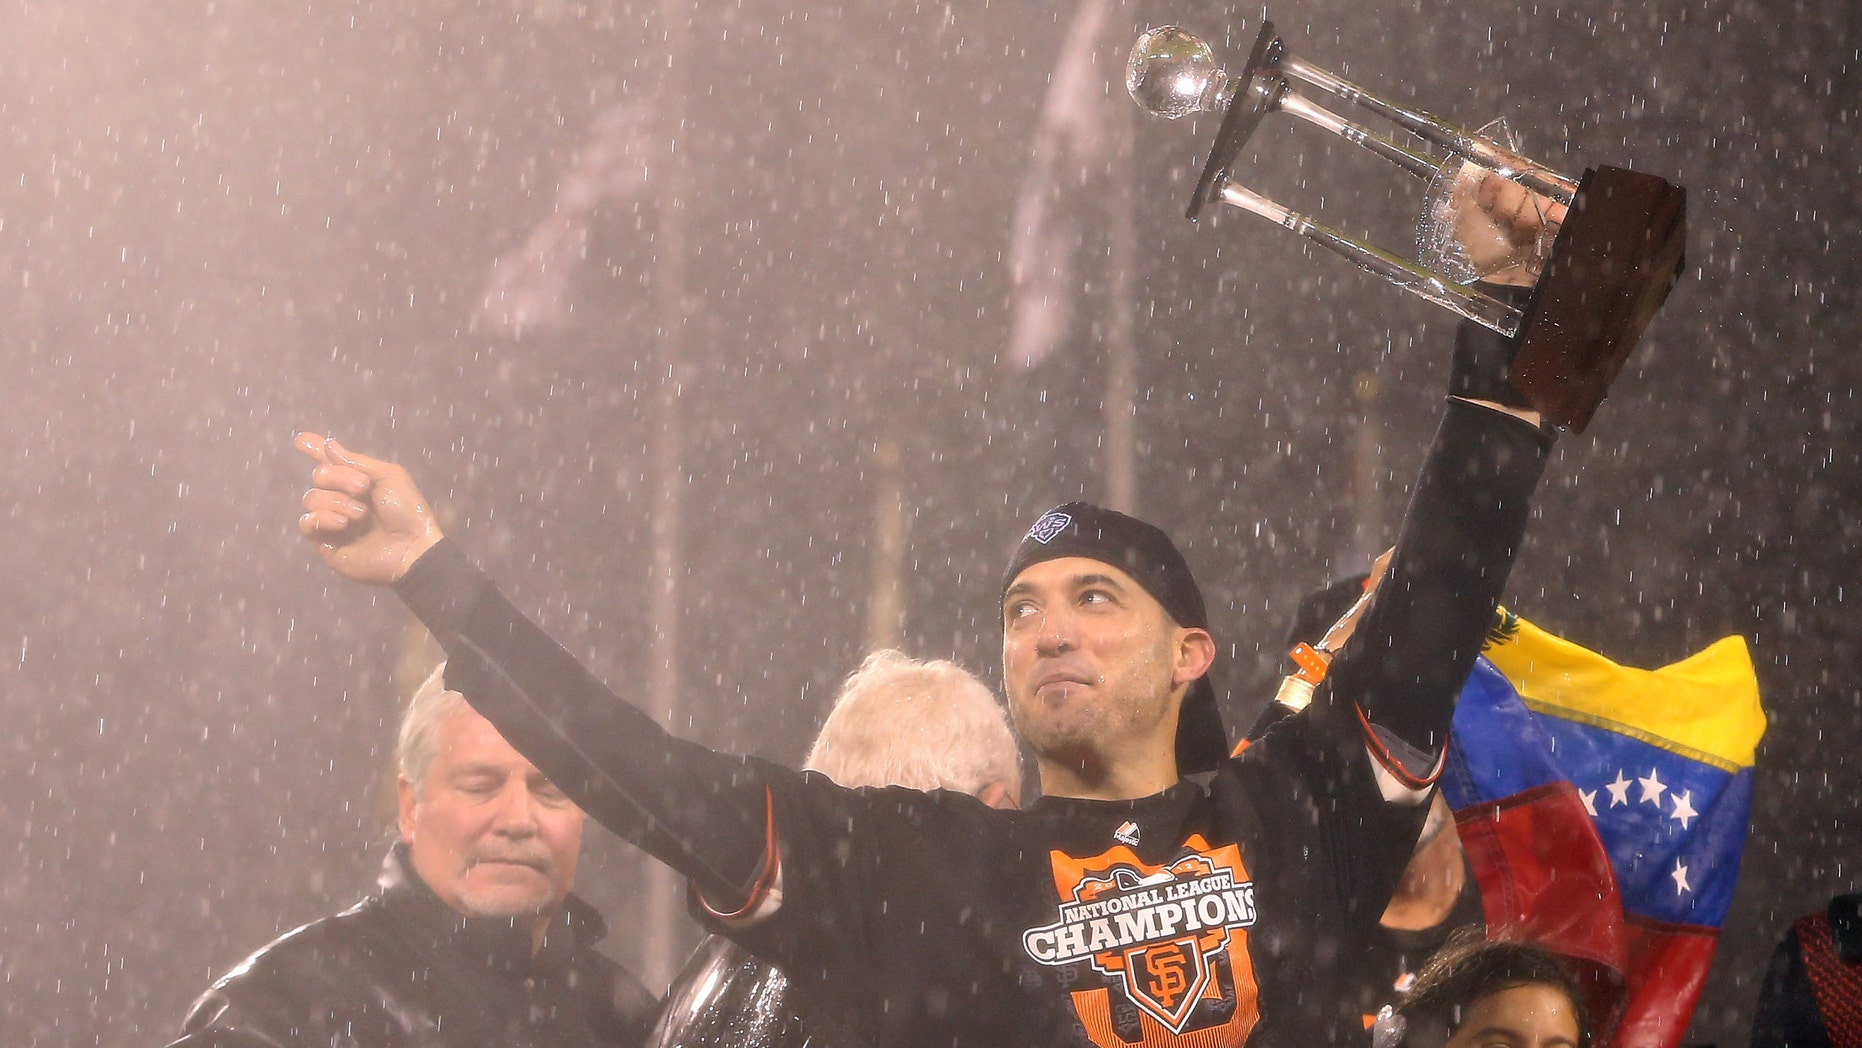 SAN FRANCISCO, CA - OCTOBER 22:  Marco Scutaro #19 of the San Francisco Giants holds up the MVP trophy after the Giants defeat the St. Louis Cardinals 9-0 in Game Seven of the National League Championship Series at AT&T Park on October 22, 2012 in San Francisco, California.  (Photo by Christian Petersen/Getty Images)